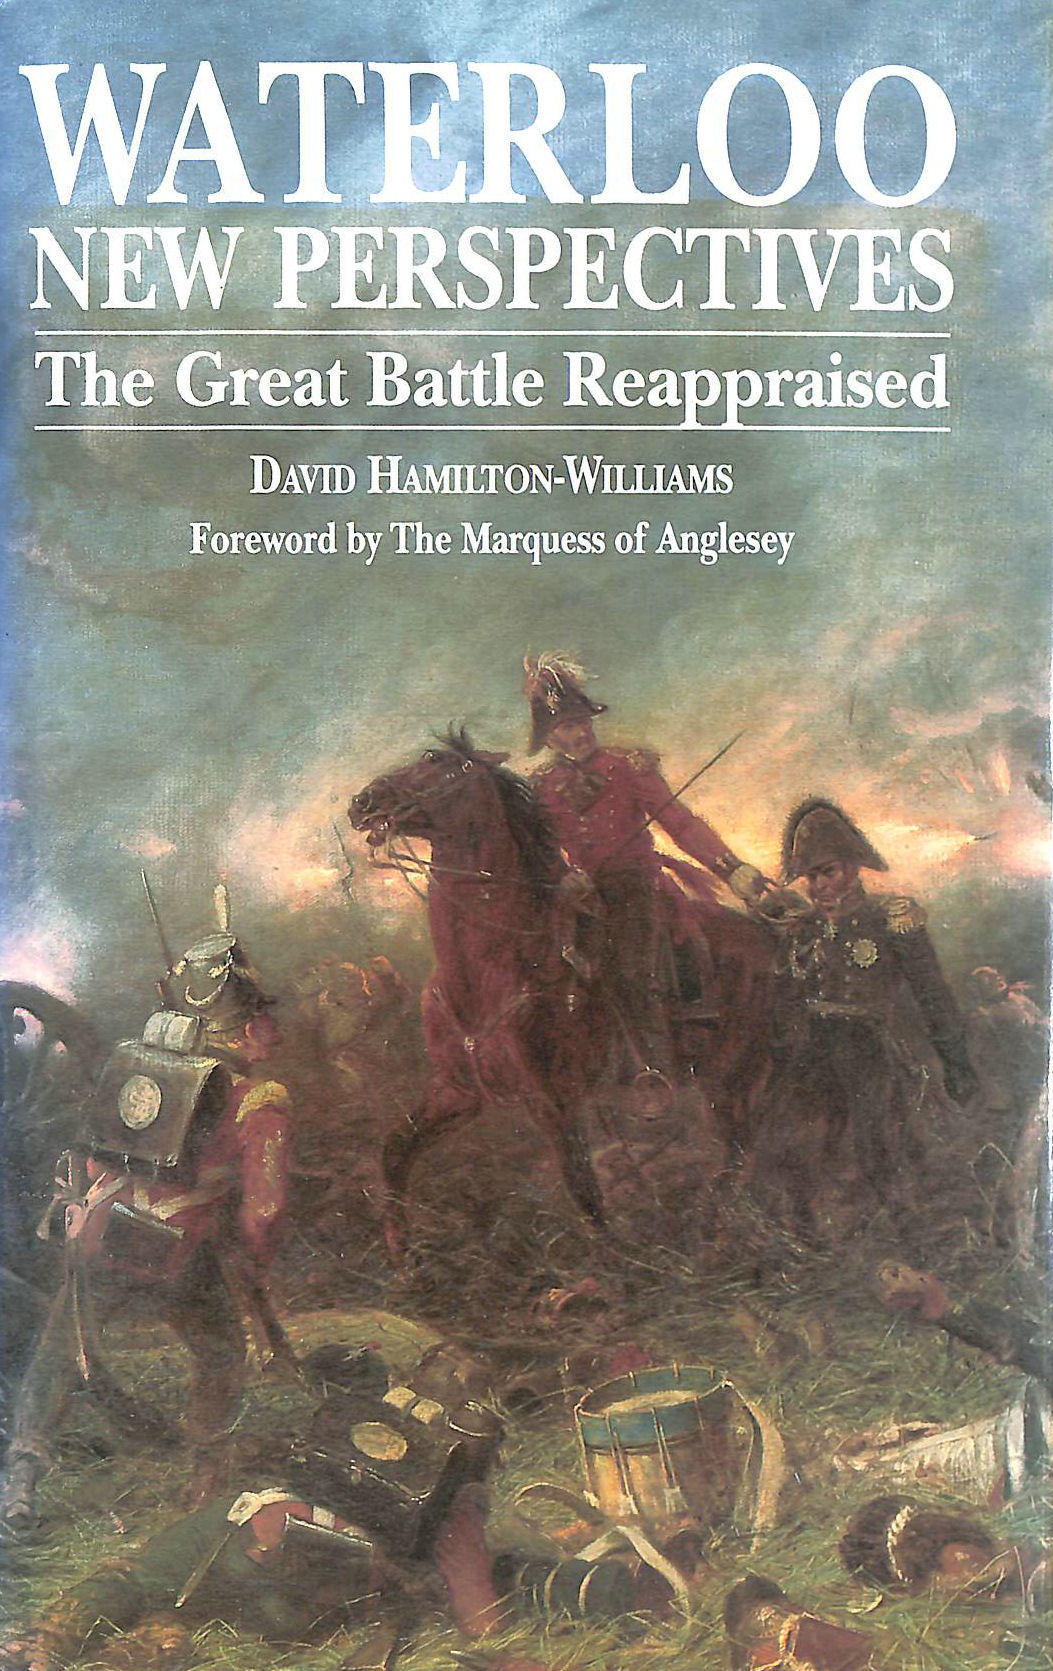 Image for Waterloo: New Perspectives - The Great Battle Reappraised